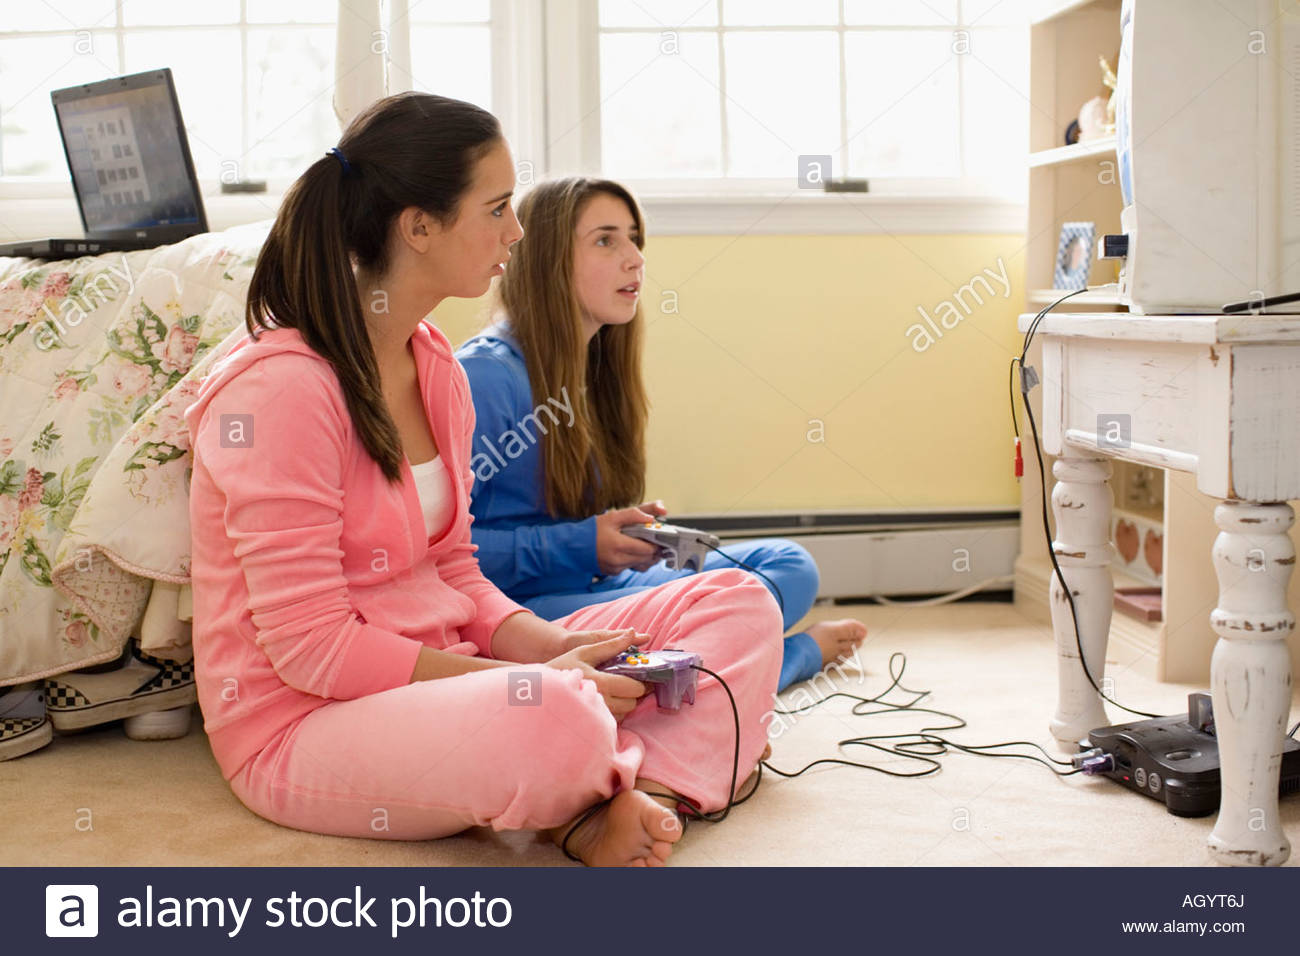 Games for teen girls theme